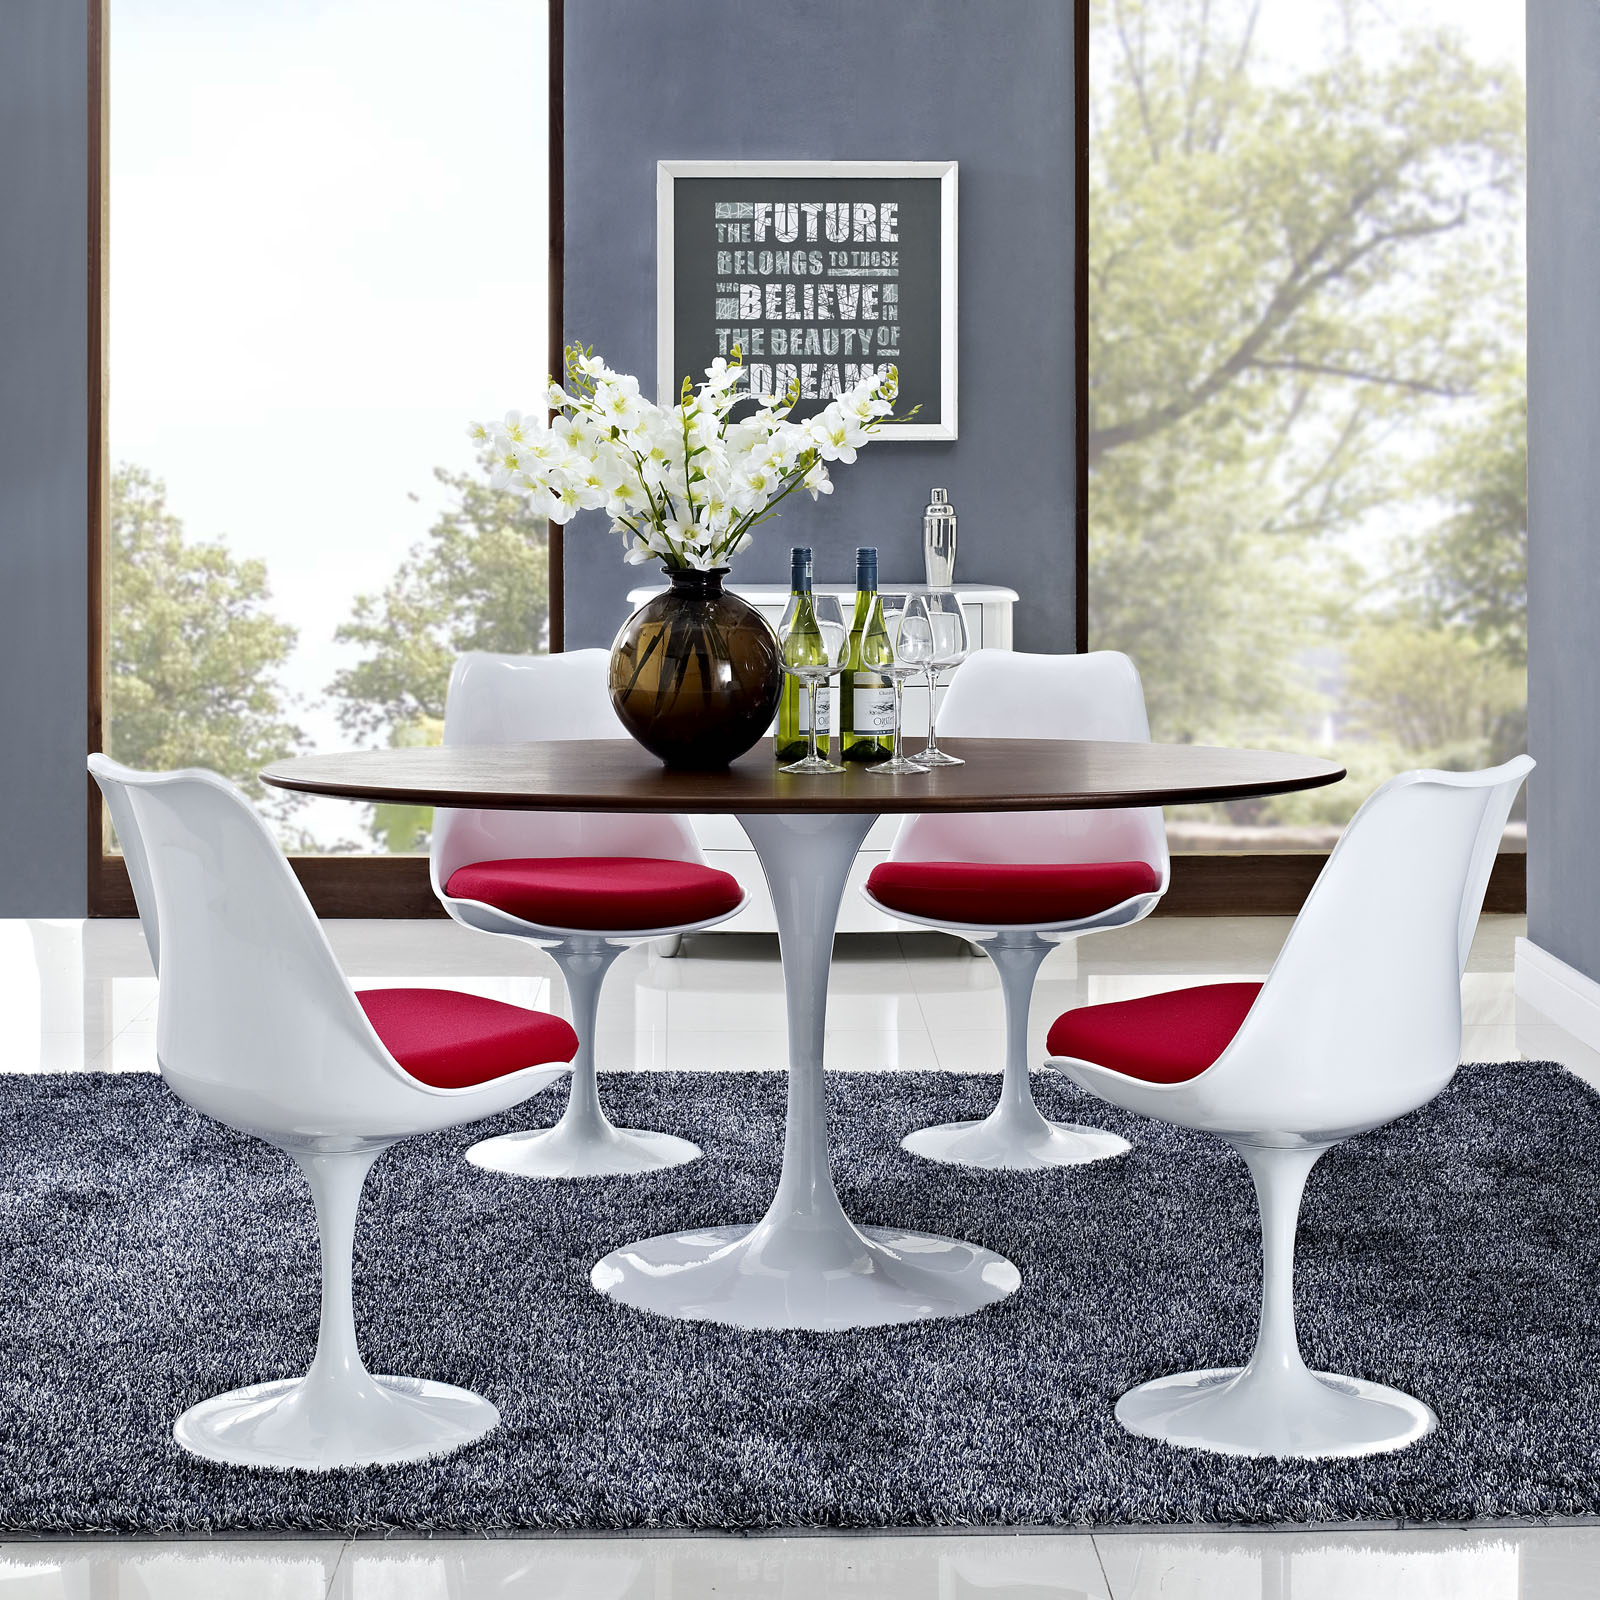 flower-dining-table-oval-with-tulip-chairs.jpg